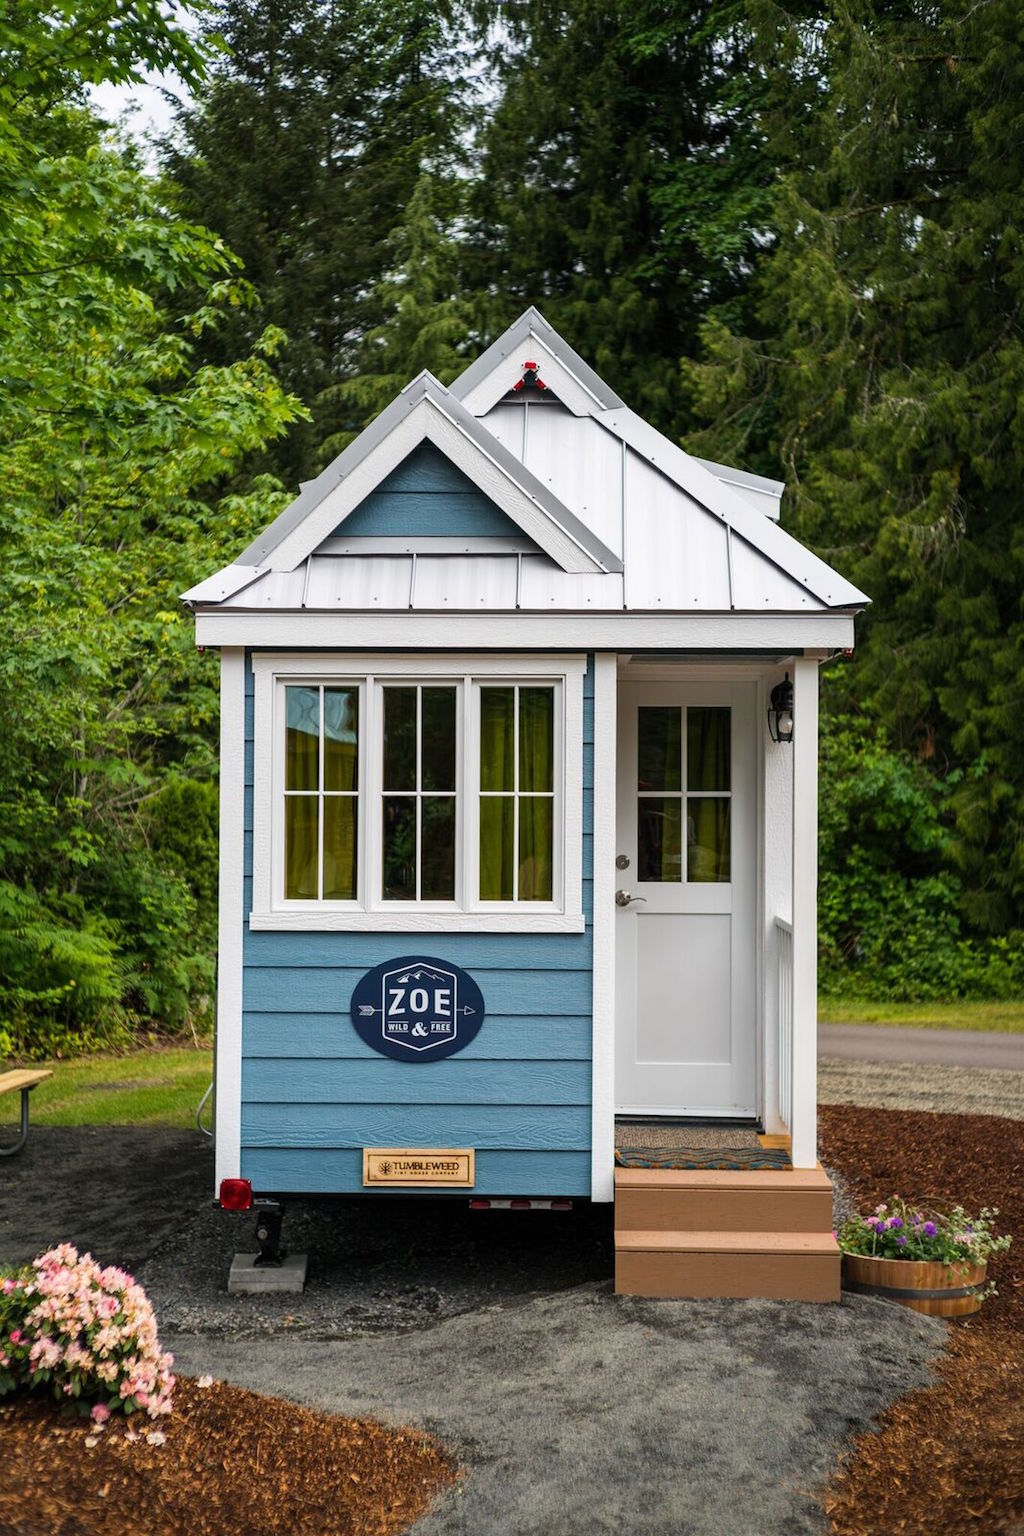 Tiny House Town Zoe Of Mt Hood Village Resort